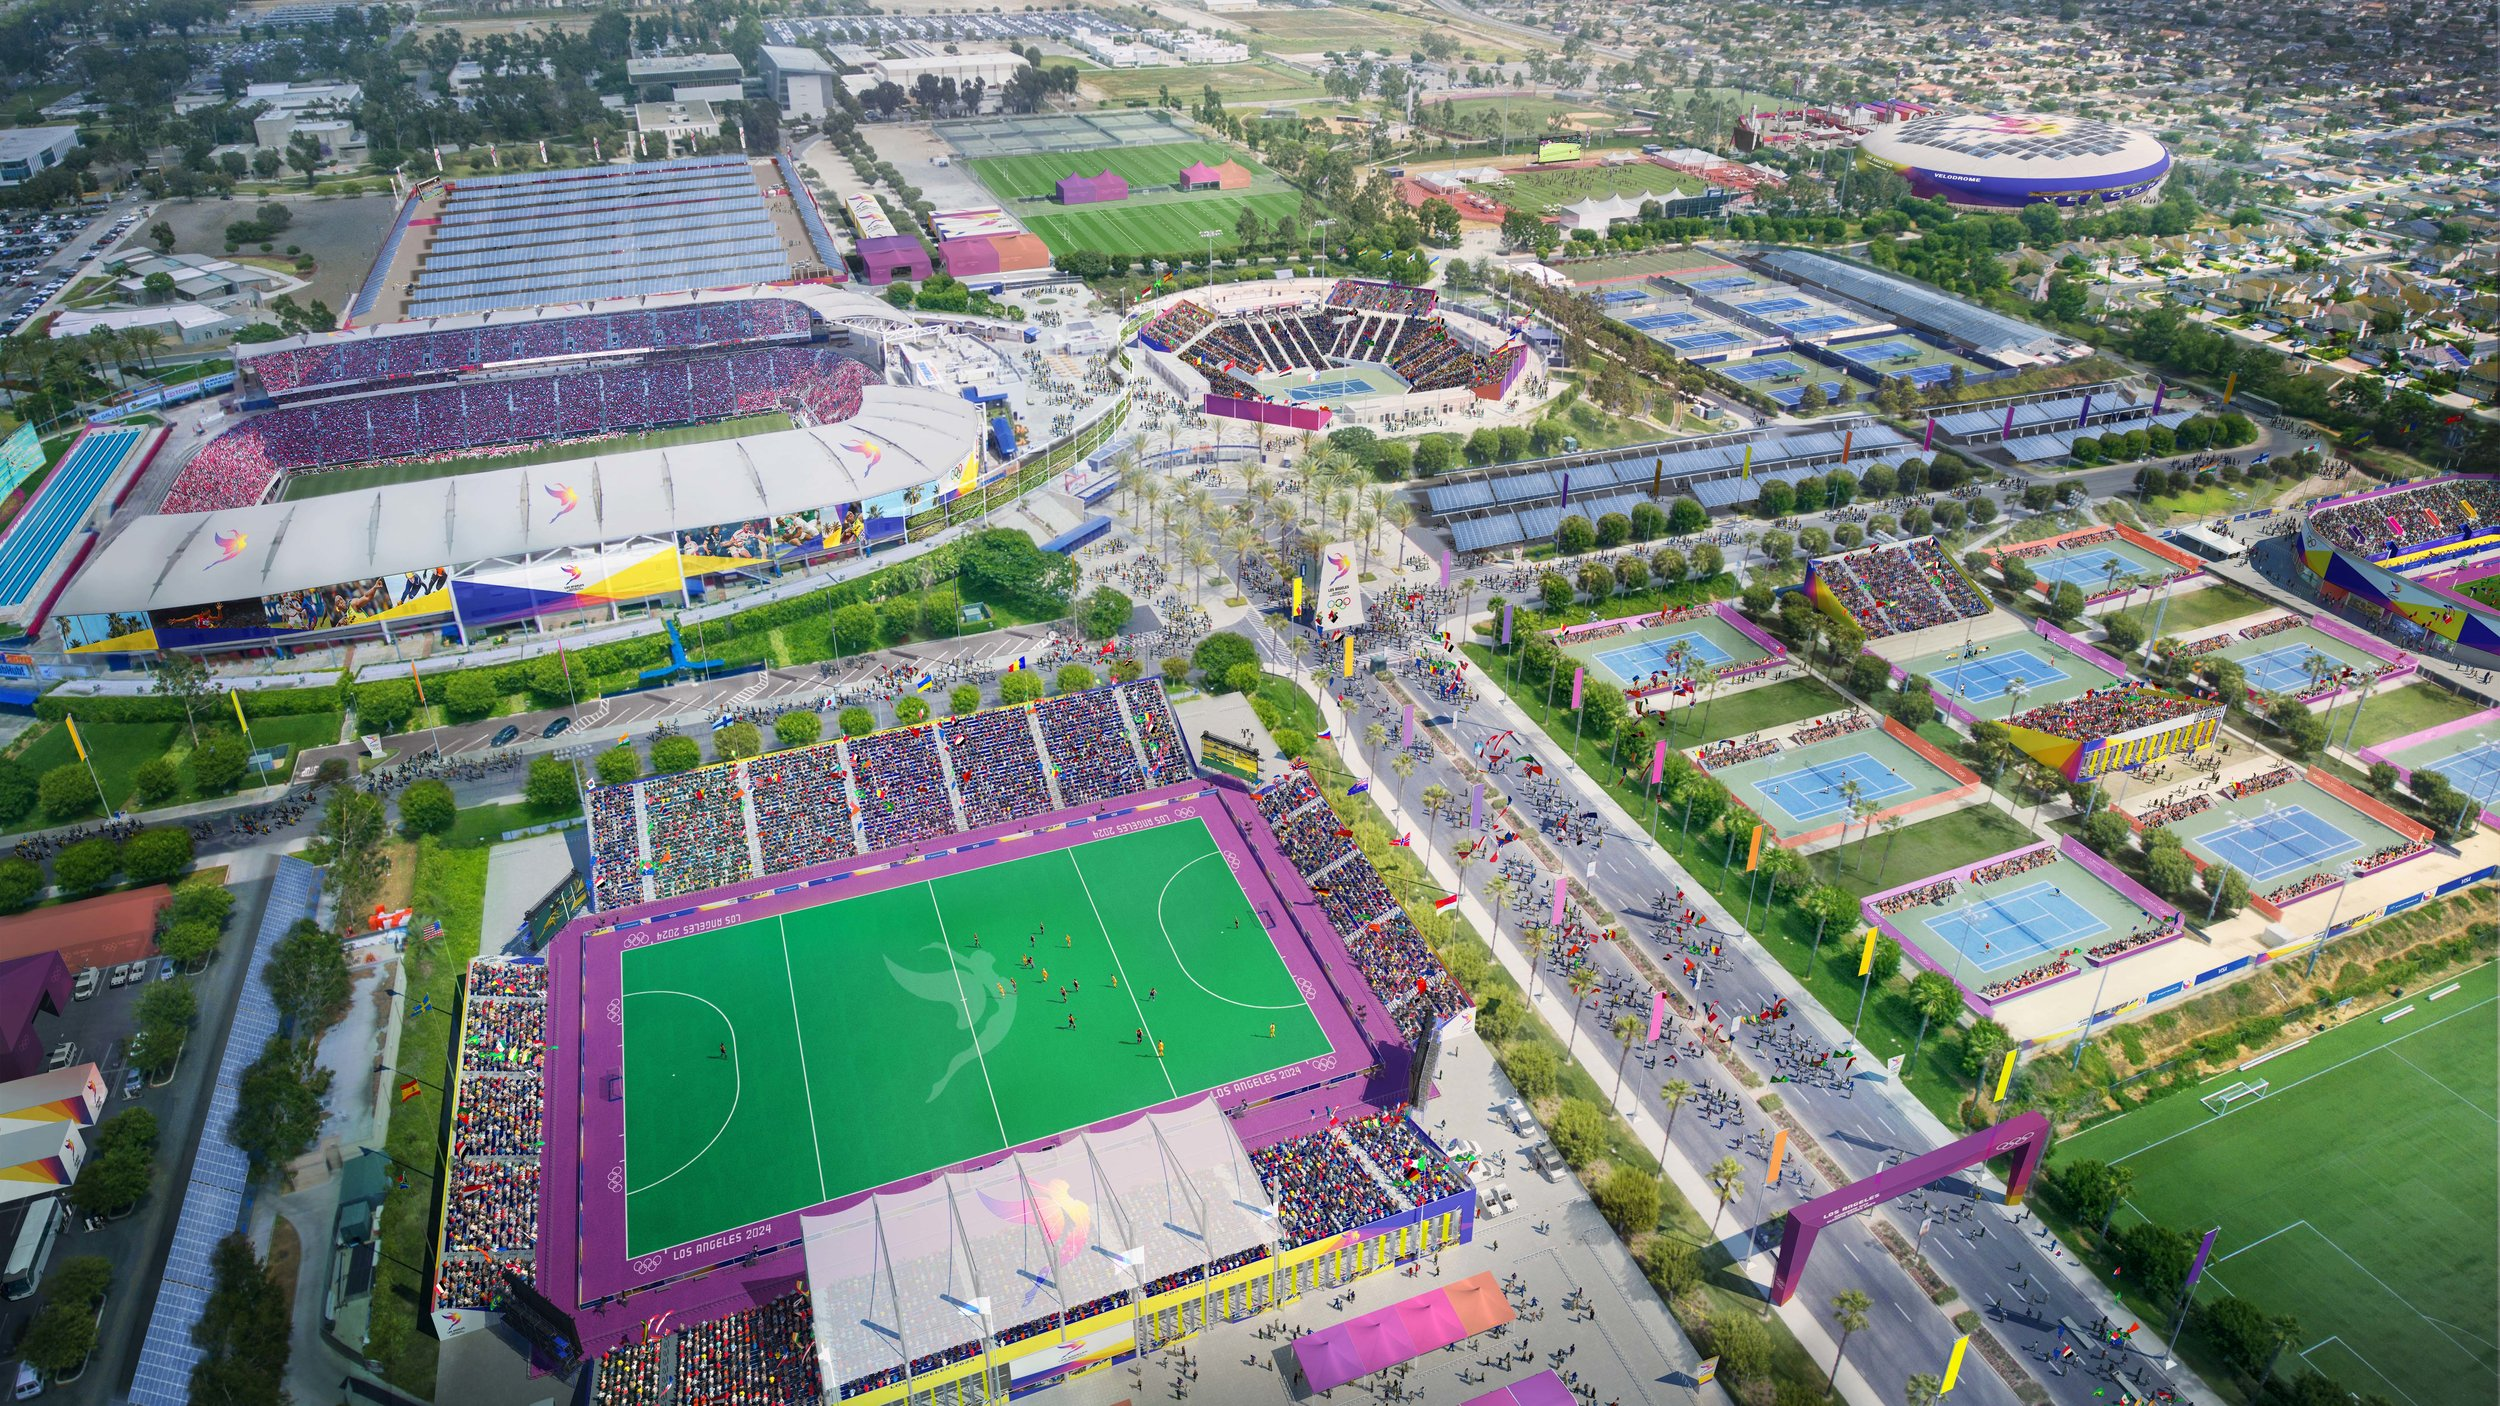 Los Angeles 2028 Olympic Bid | South Bay Sports Park. Designed while at AECOM